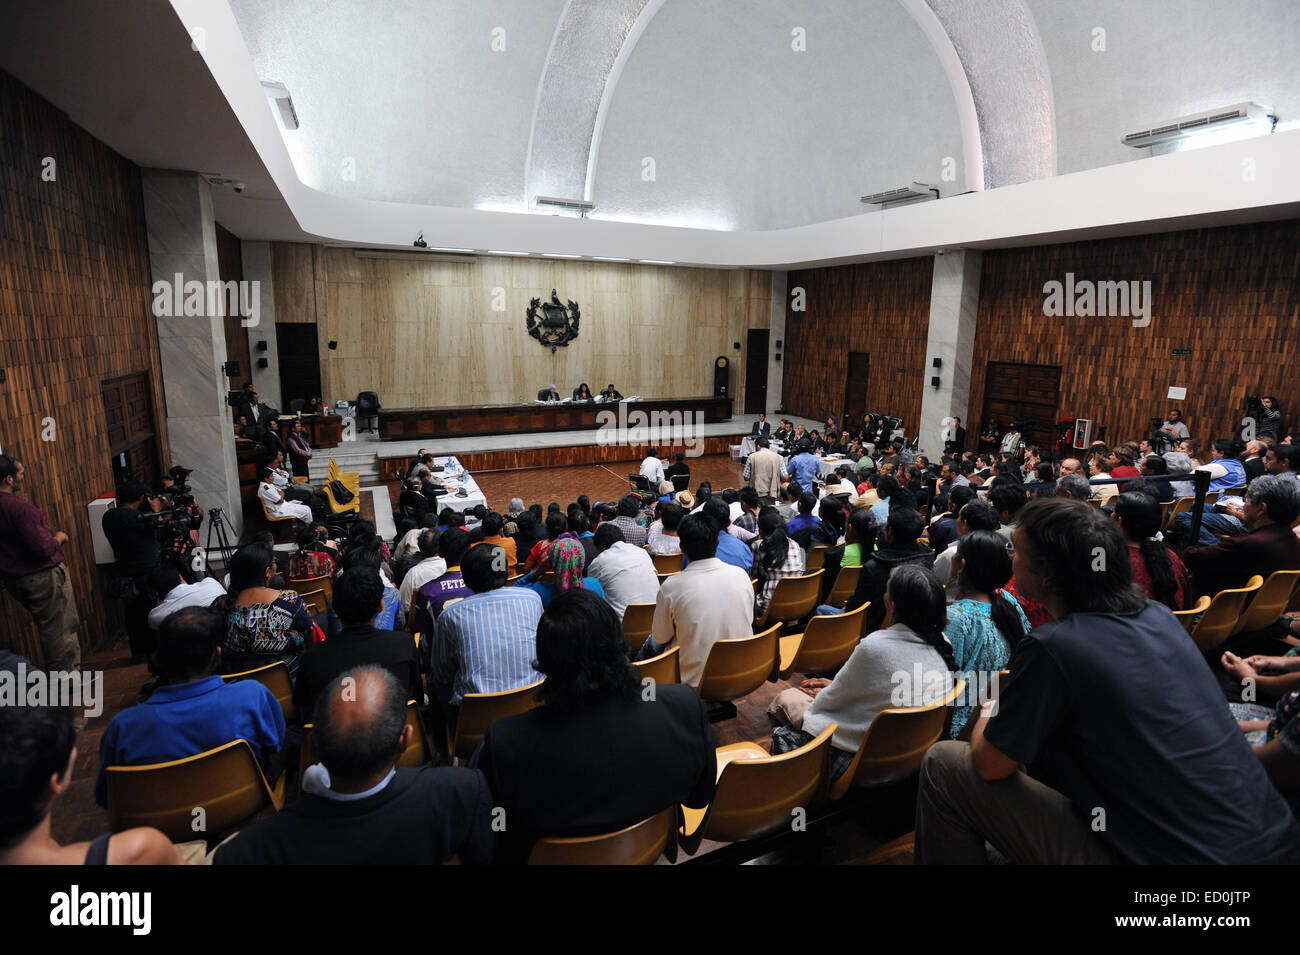 The courtroom of Rios Montt Genocide trial in Supreme Court of Justice in Guatemala City in March 2013. - Stock Image